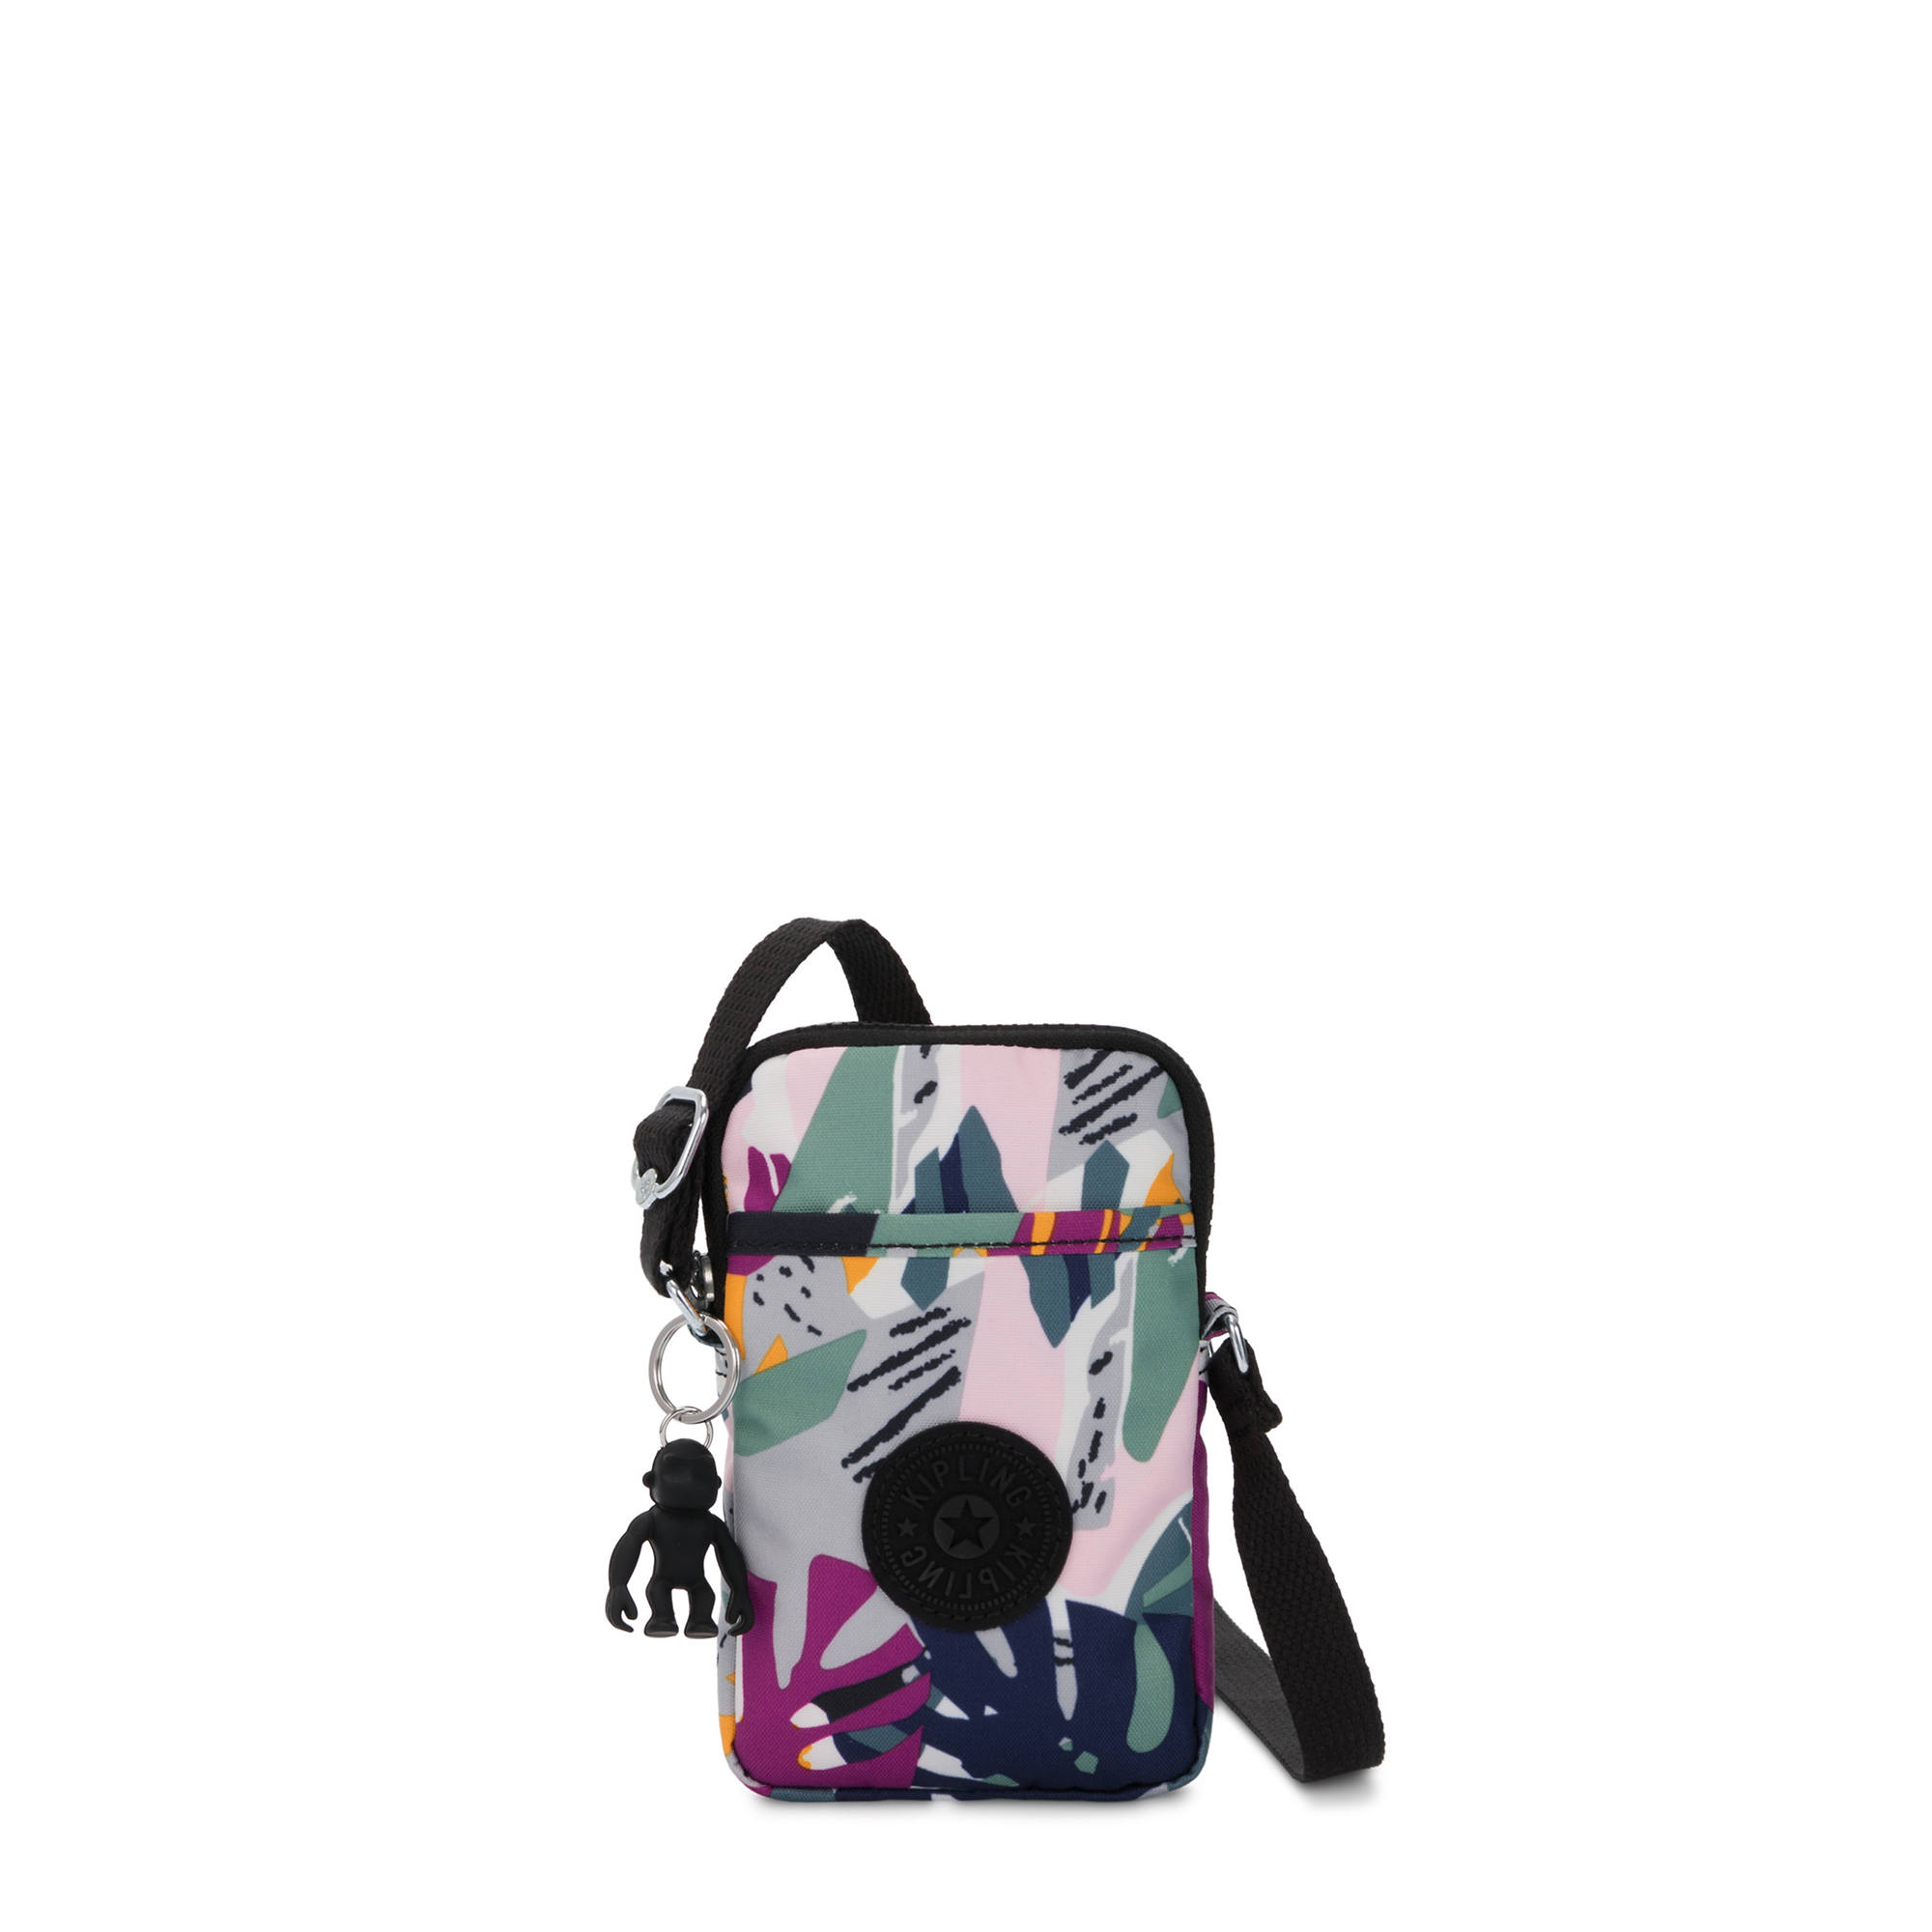 Tally Printed Crossbody Phone Bag,Active Jungle,large-zoomed